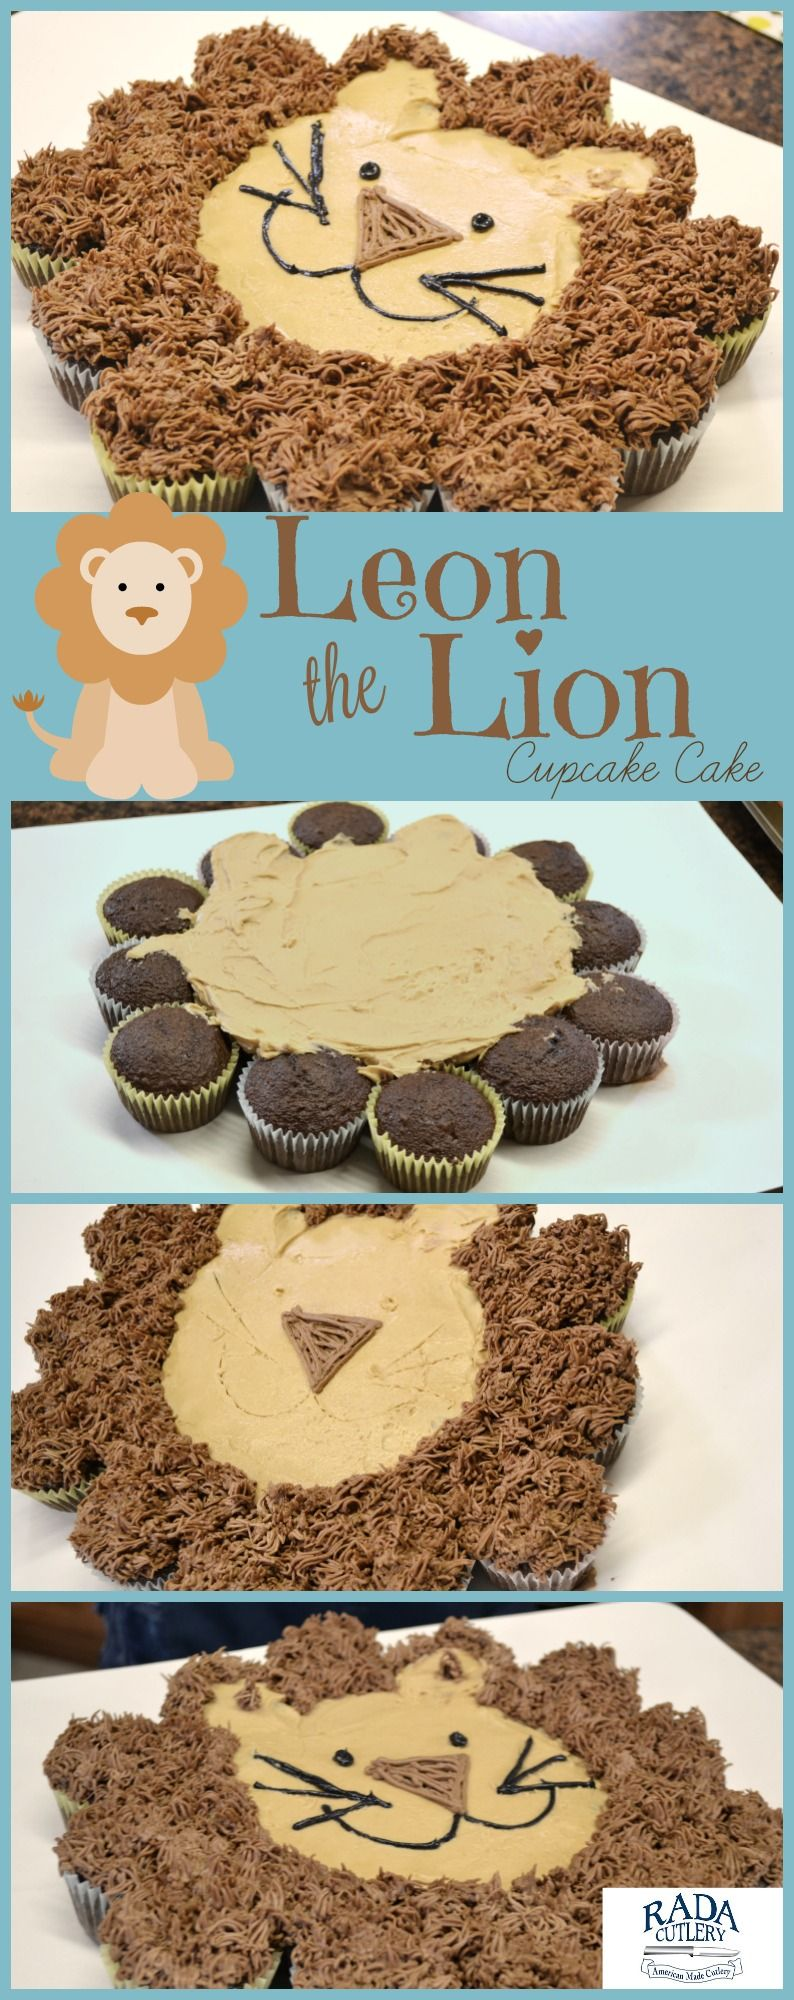 Cupcake Cake Lion Looking For A Great Cupcake Idea That Would Be Fun For Both